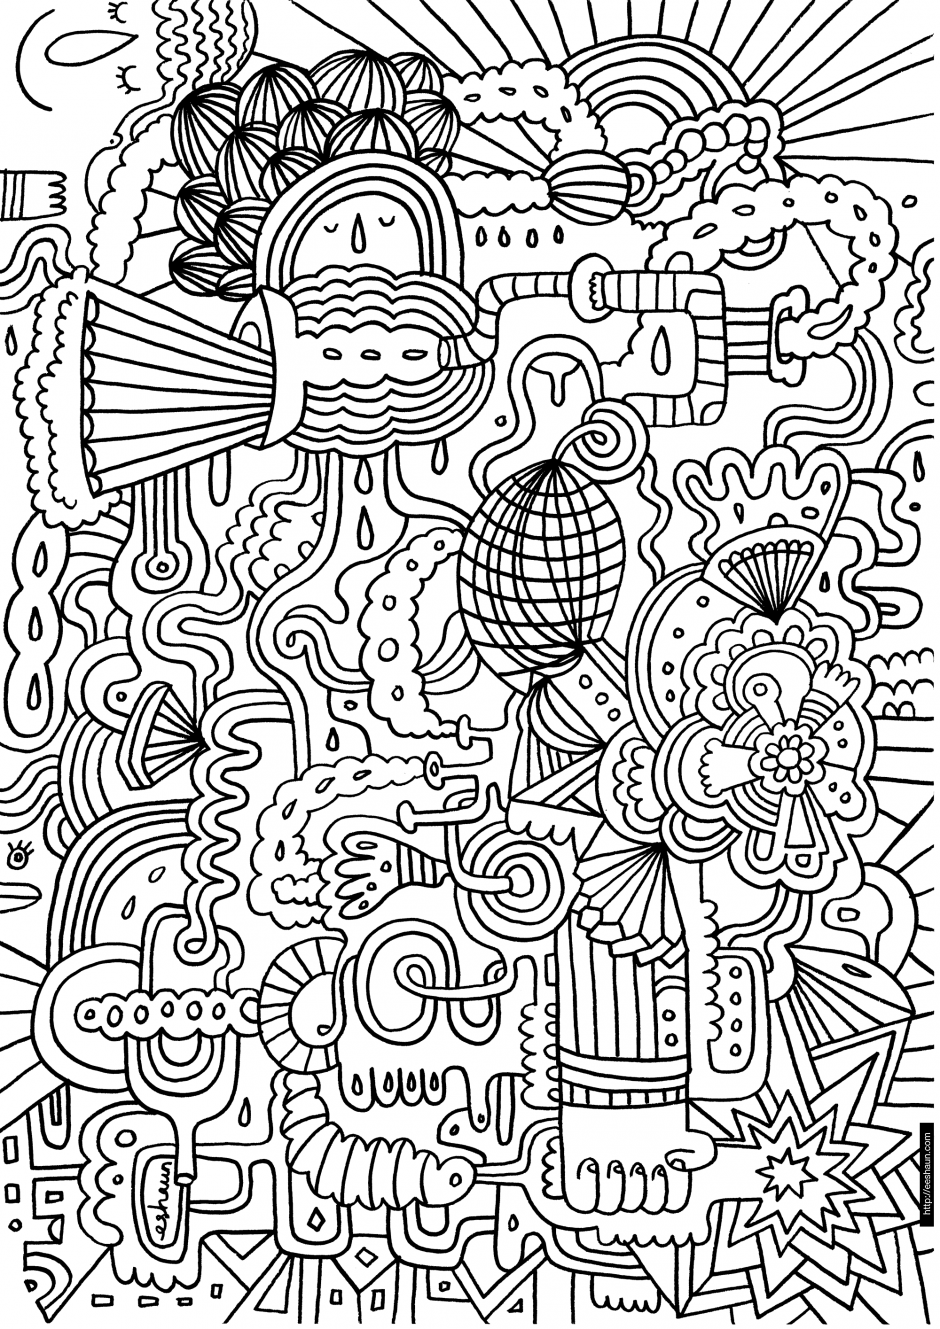 cool medium difficulty coloring pages - photo#25